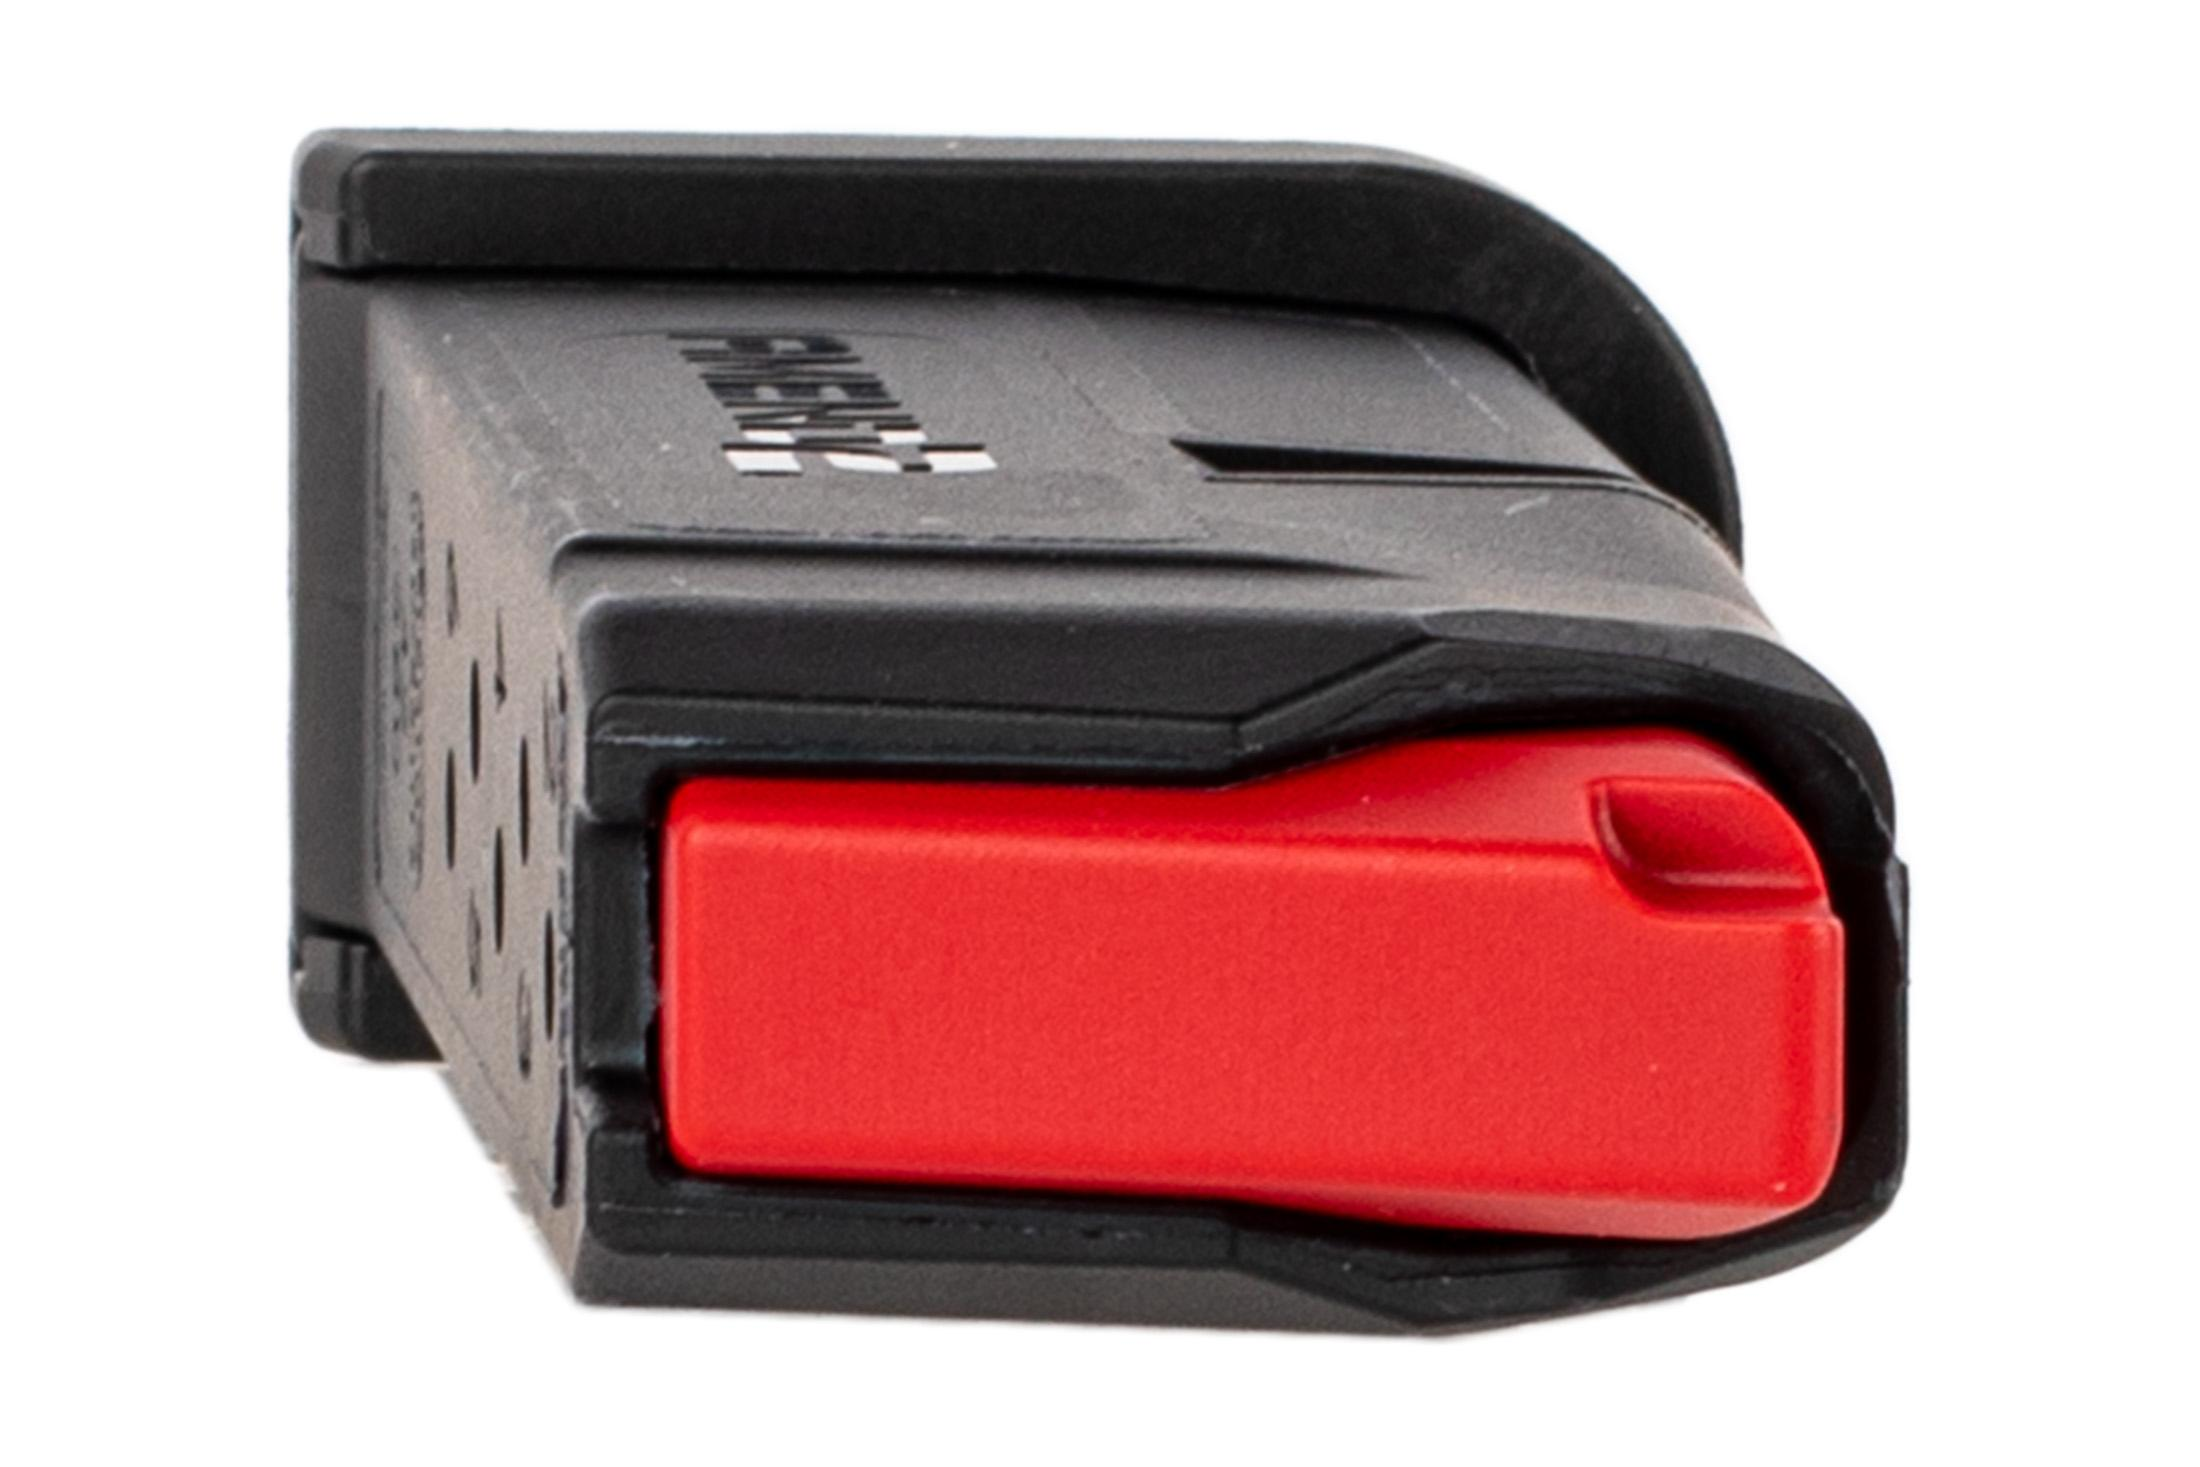 Amend2 Glock 42 magazine features a black polymer construction